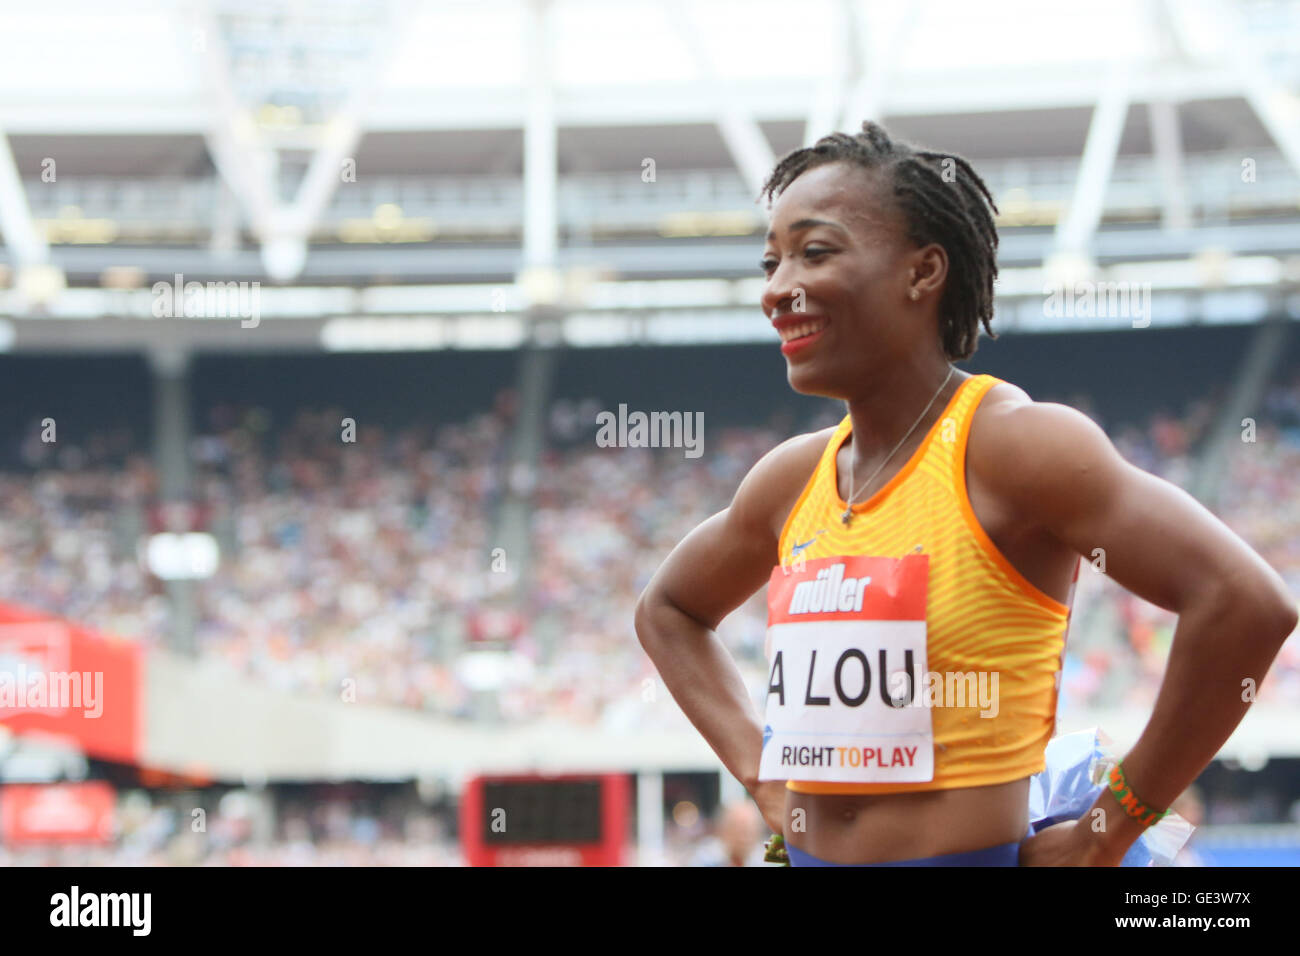 London, UK. 23rd July 2016. London, UK. IAAF Diamond Leauge Anniversary Games. Marie-Josee takes first place in - Stock Image